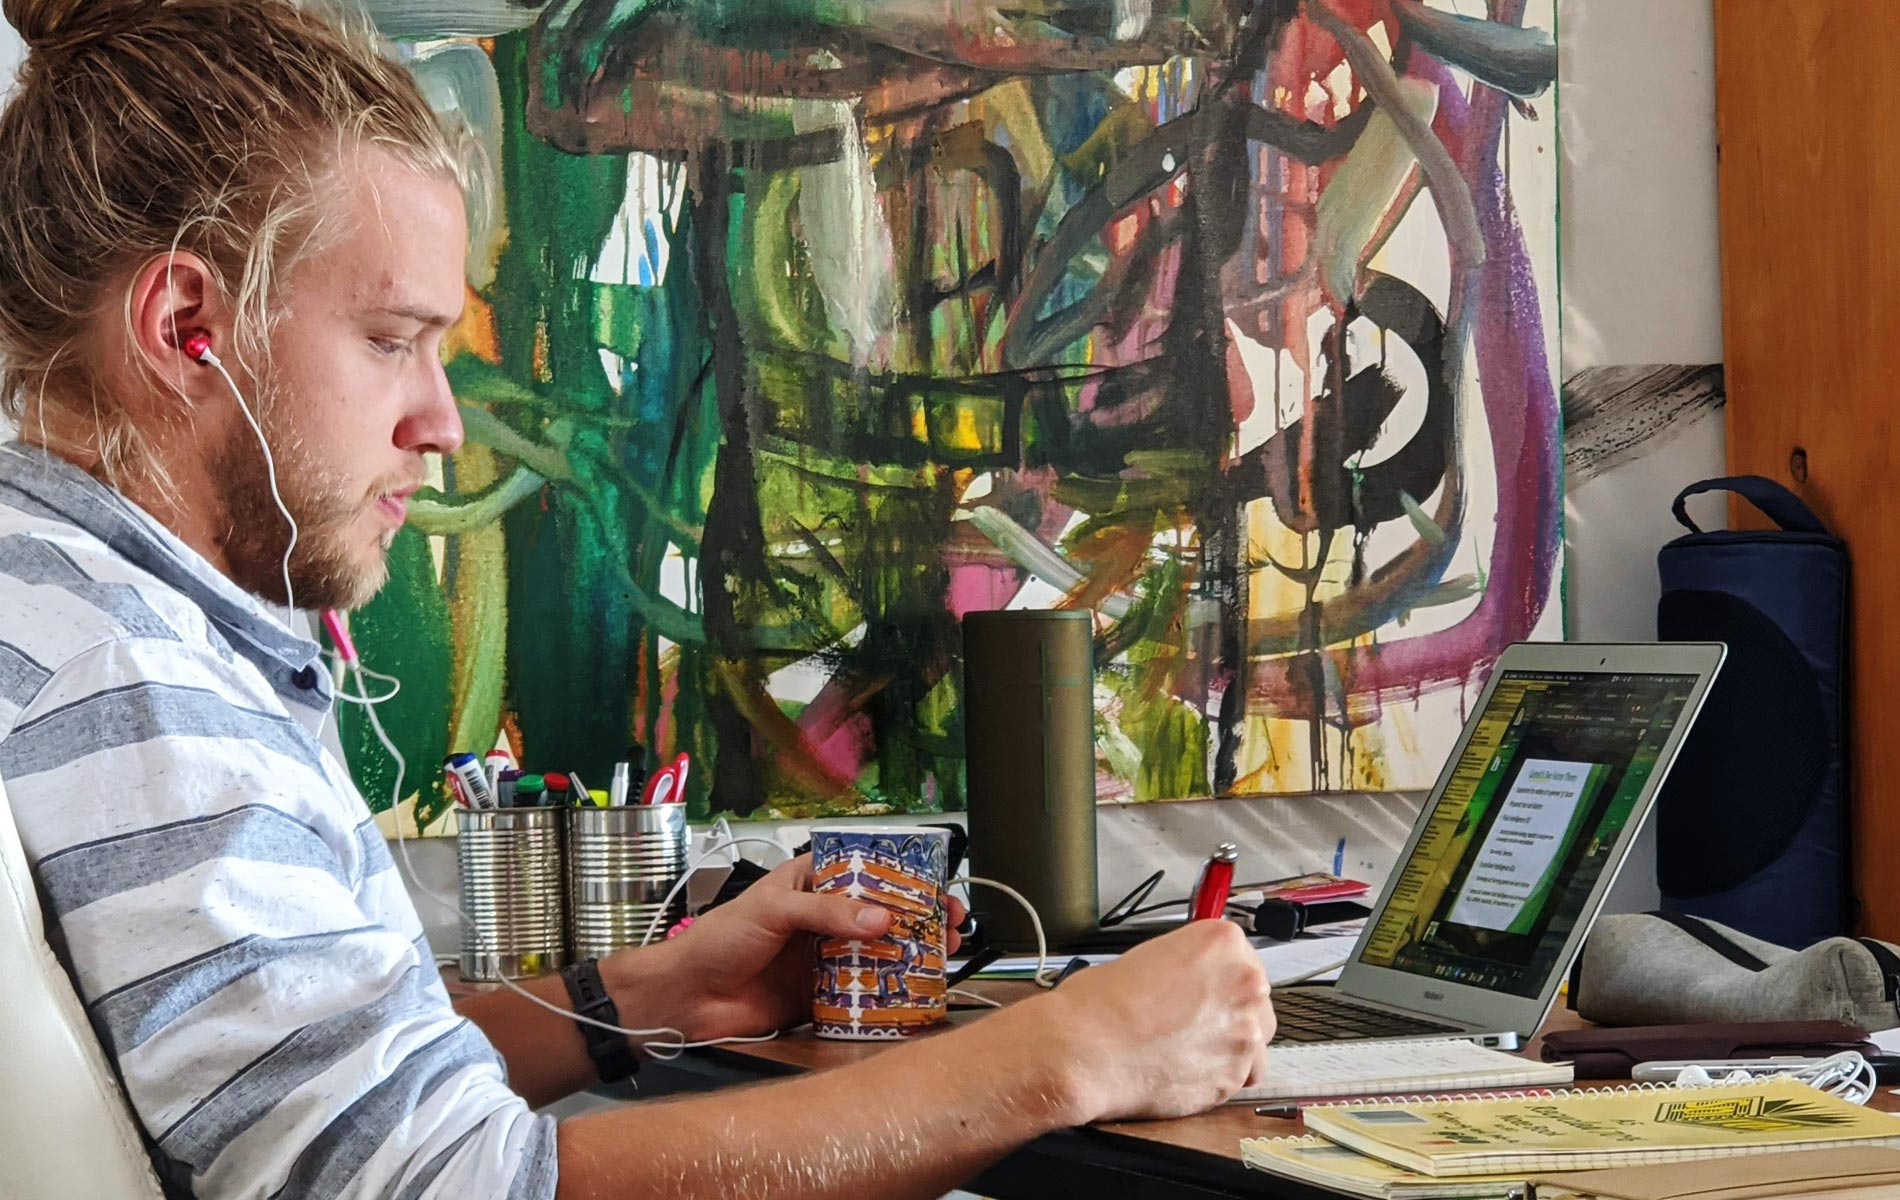 Murdoch student James Norton studying from home on his laptop